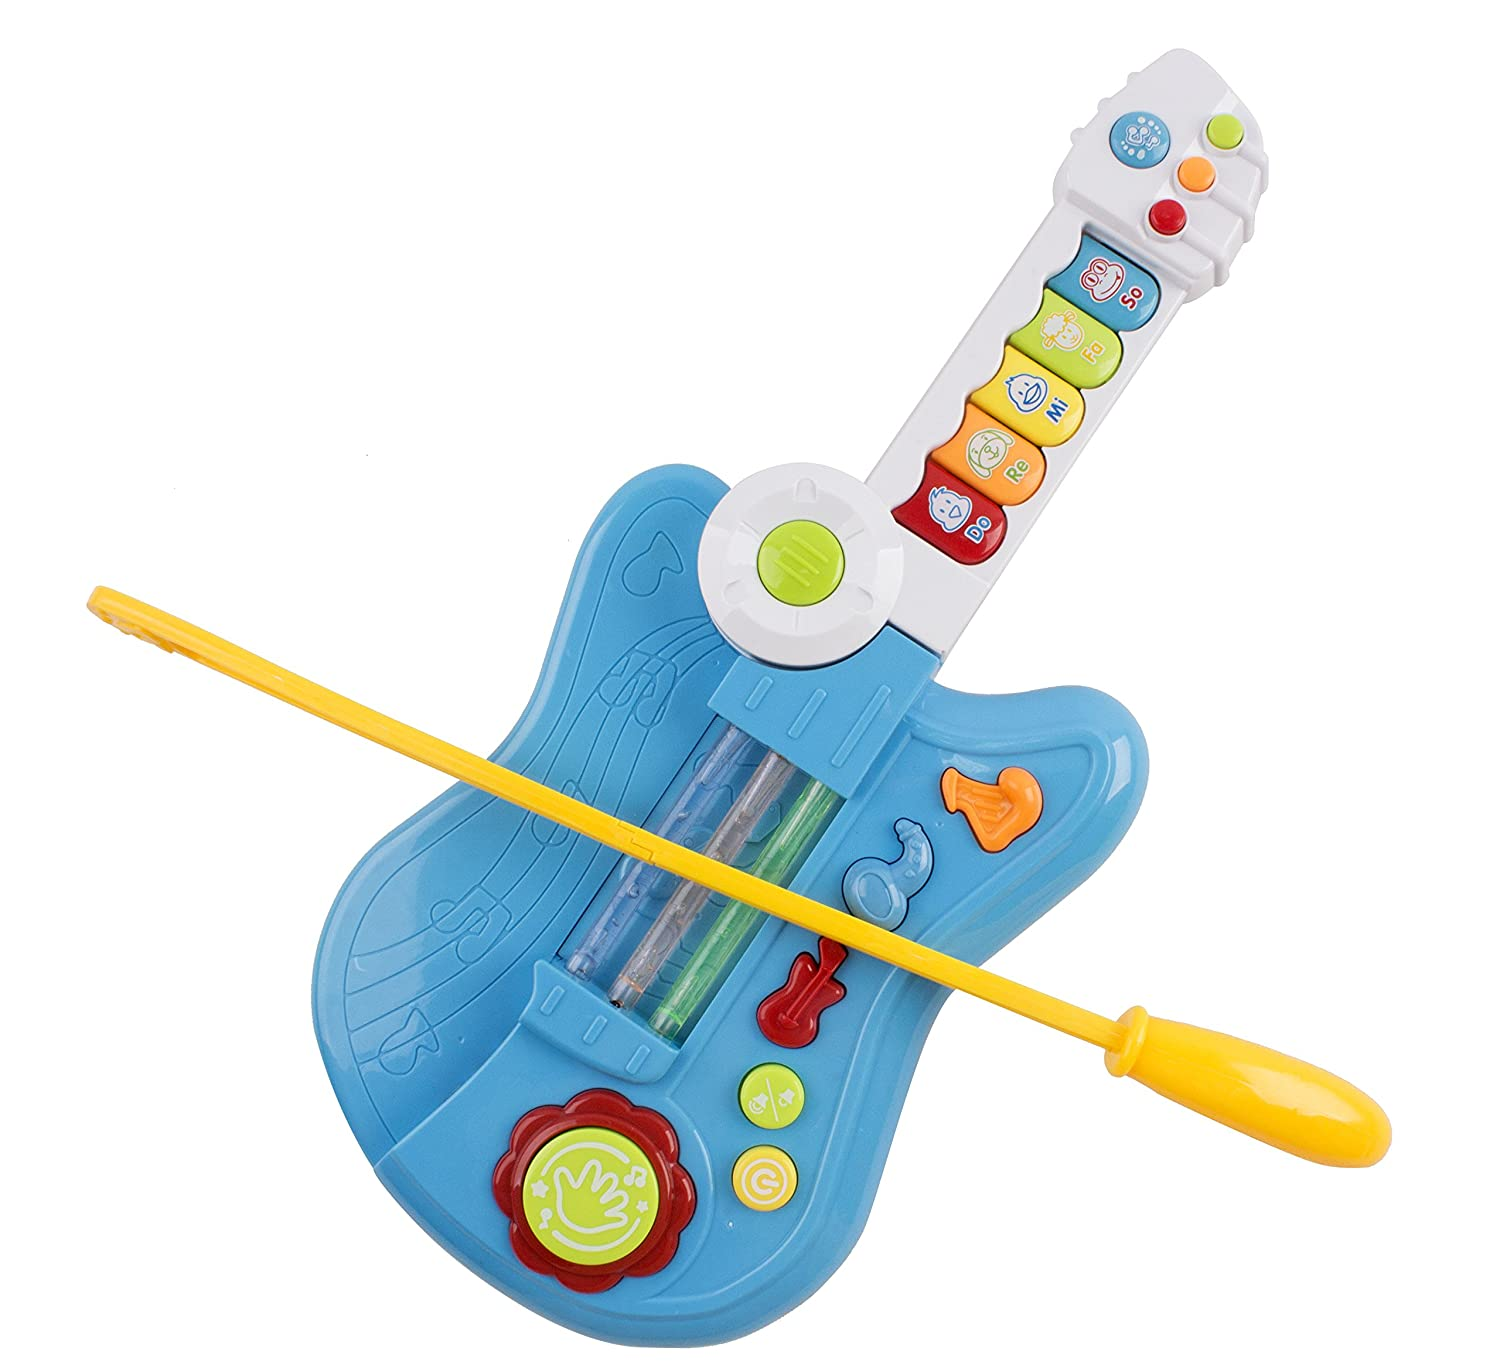 Toy Guitar Battery 3 In 1 Electric Kids Guitar Toy With Violin